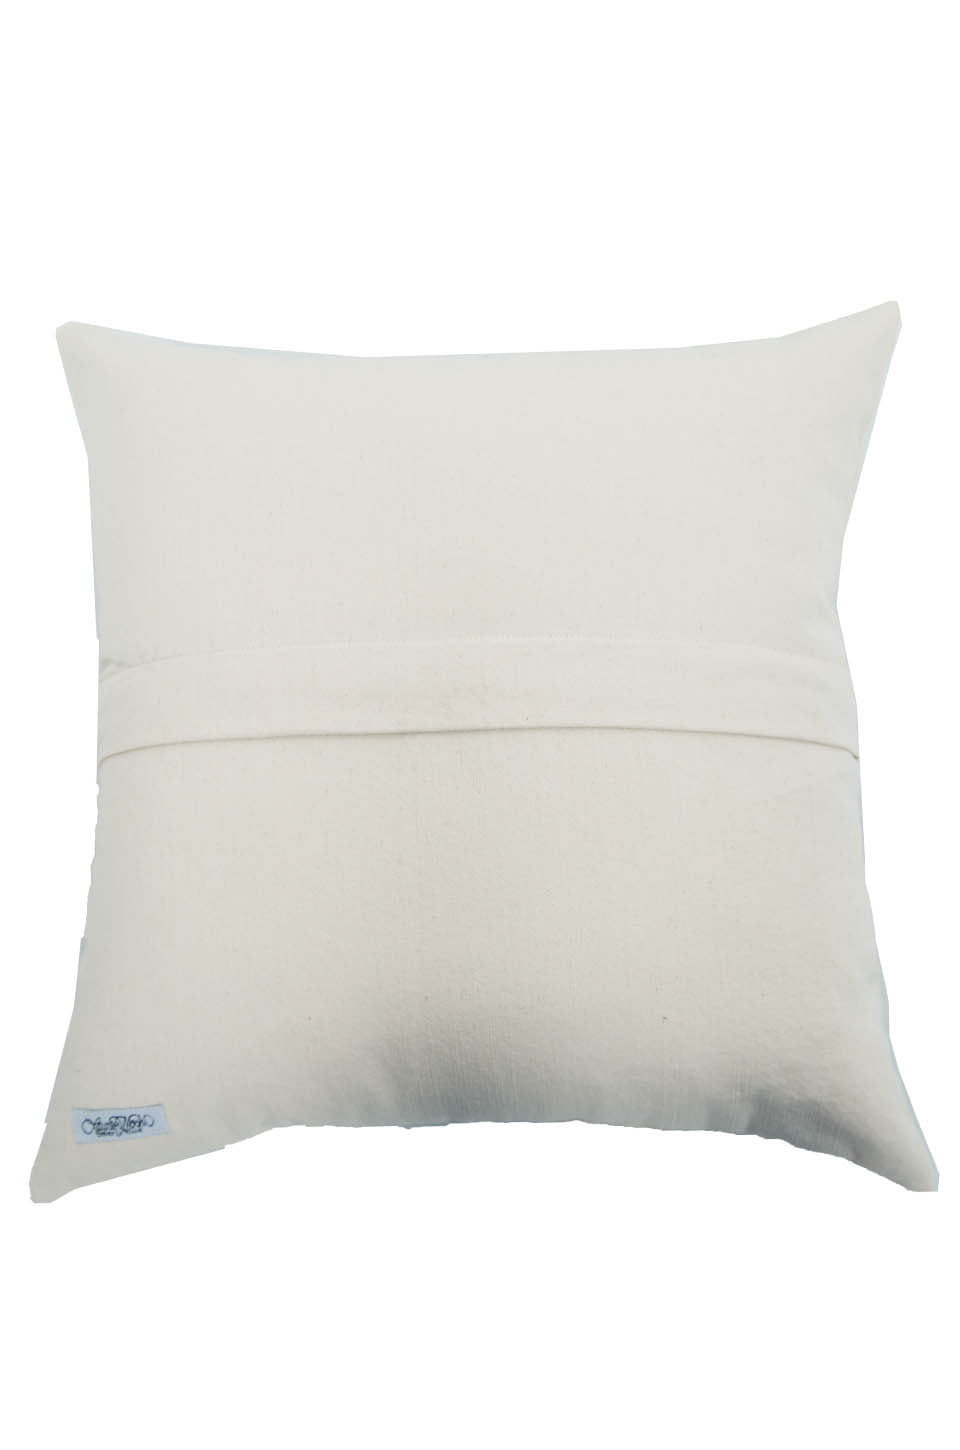 Zody Peace Hand Canvas Pillow - Lauren Moshi - 2